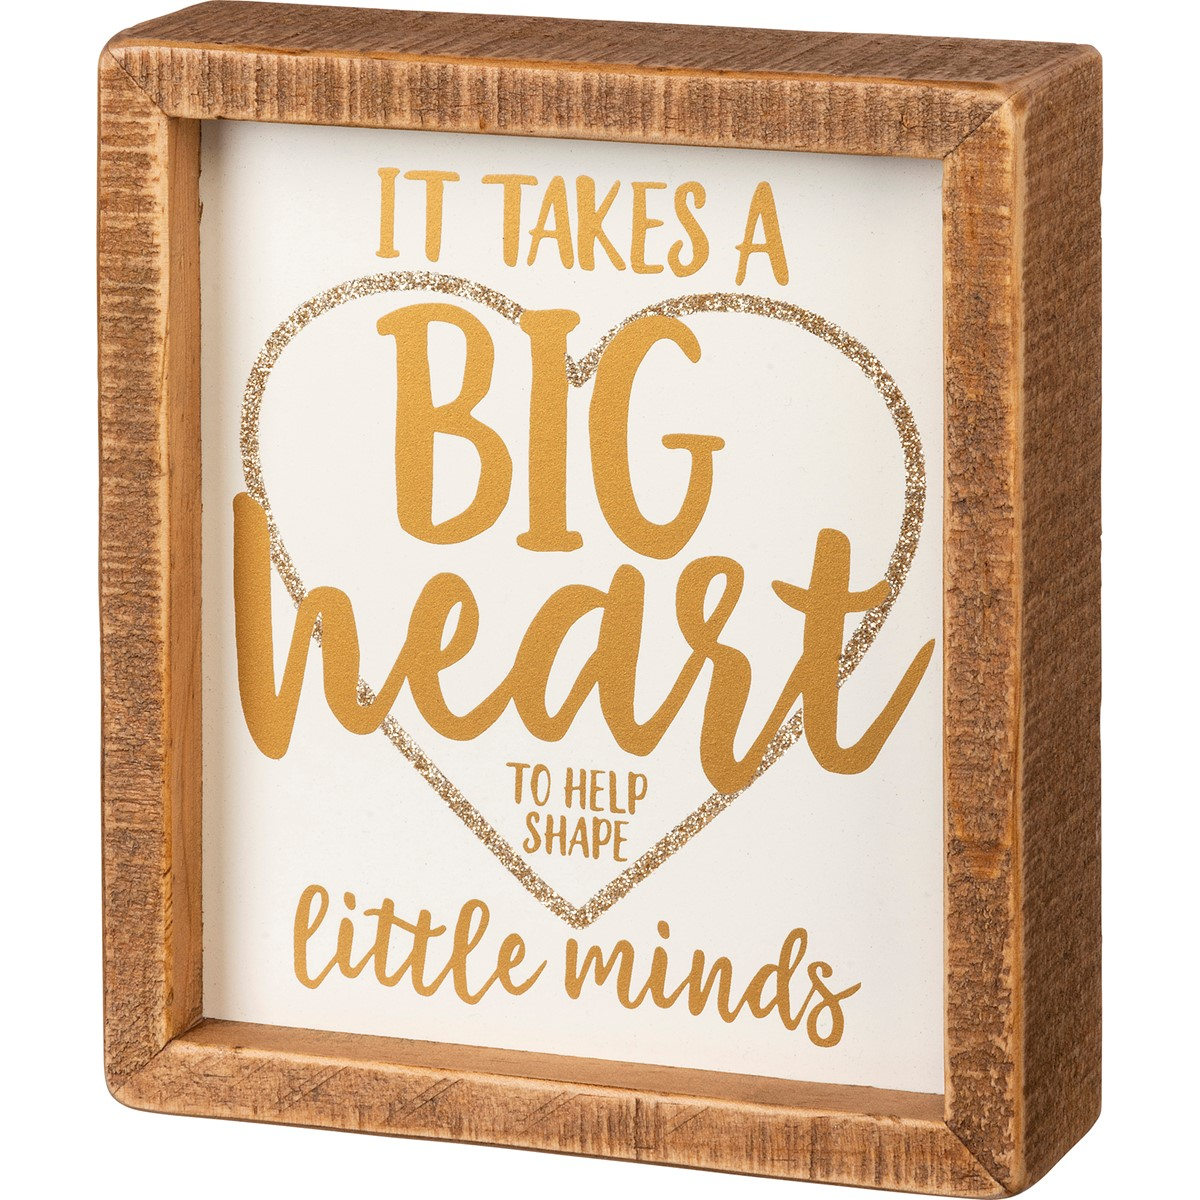 "Inset Box Sign - It Takes A Big Heart - 6"" x 7"" x 1.75"" - Wood"